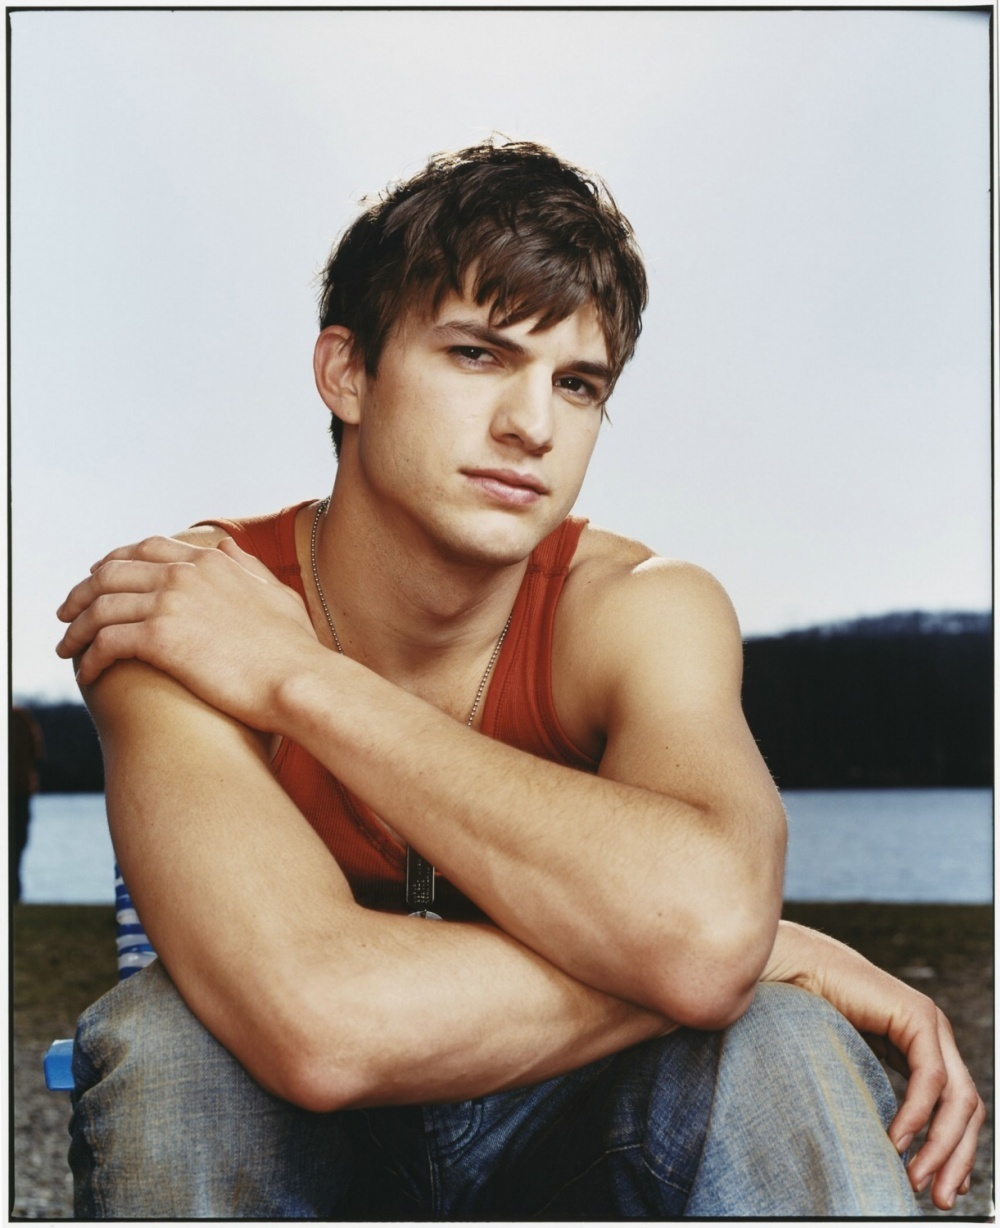 Ashton Kutcher Ashton Kutcher Photo 20348501 Fanpop